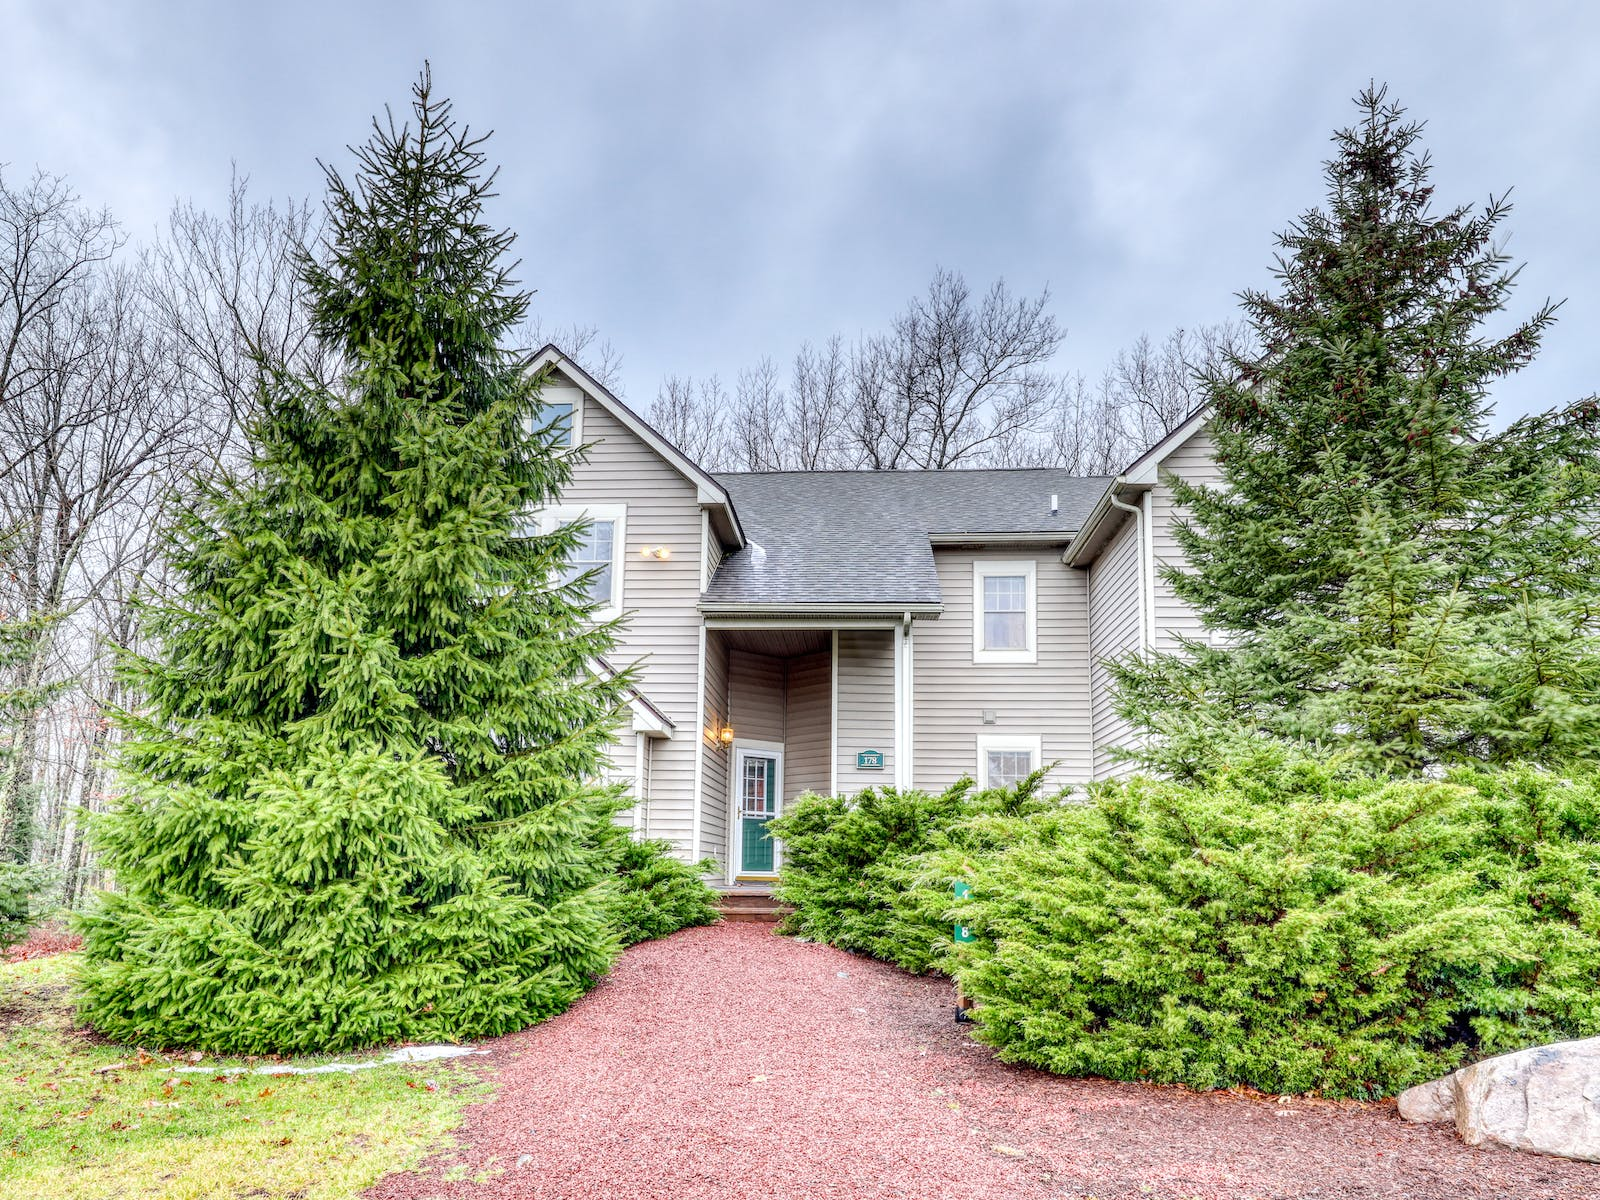 Tannersville, PA vacation home surrounded by tall pine trees